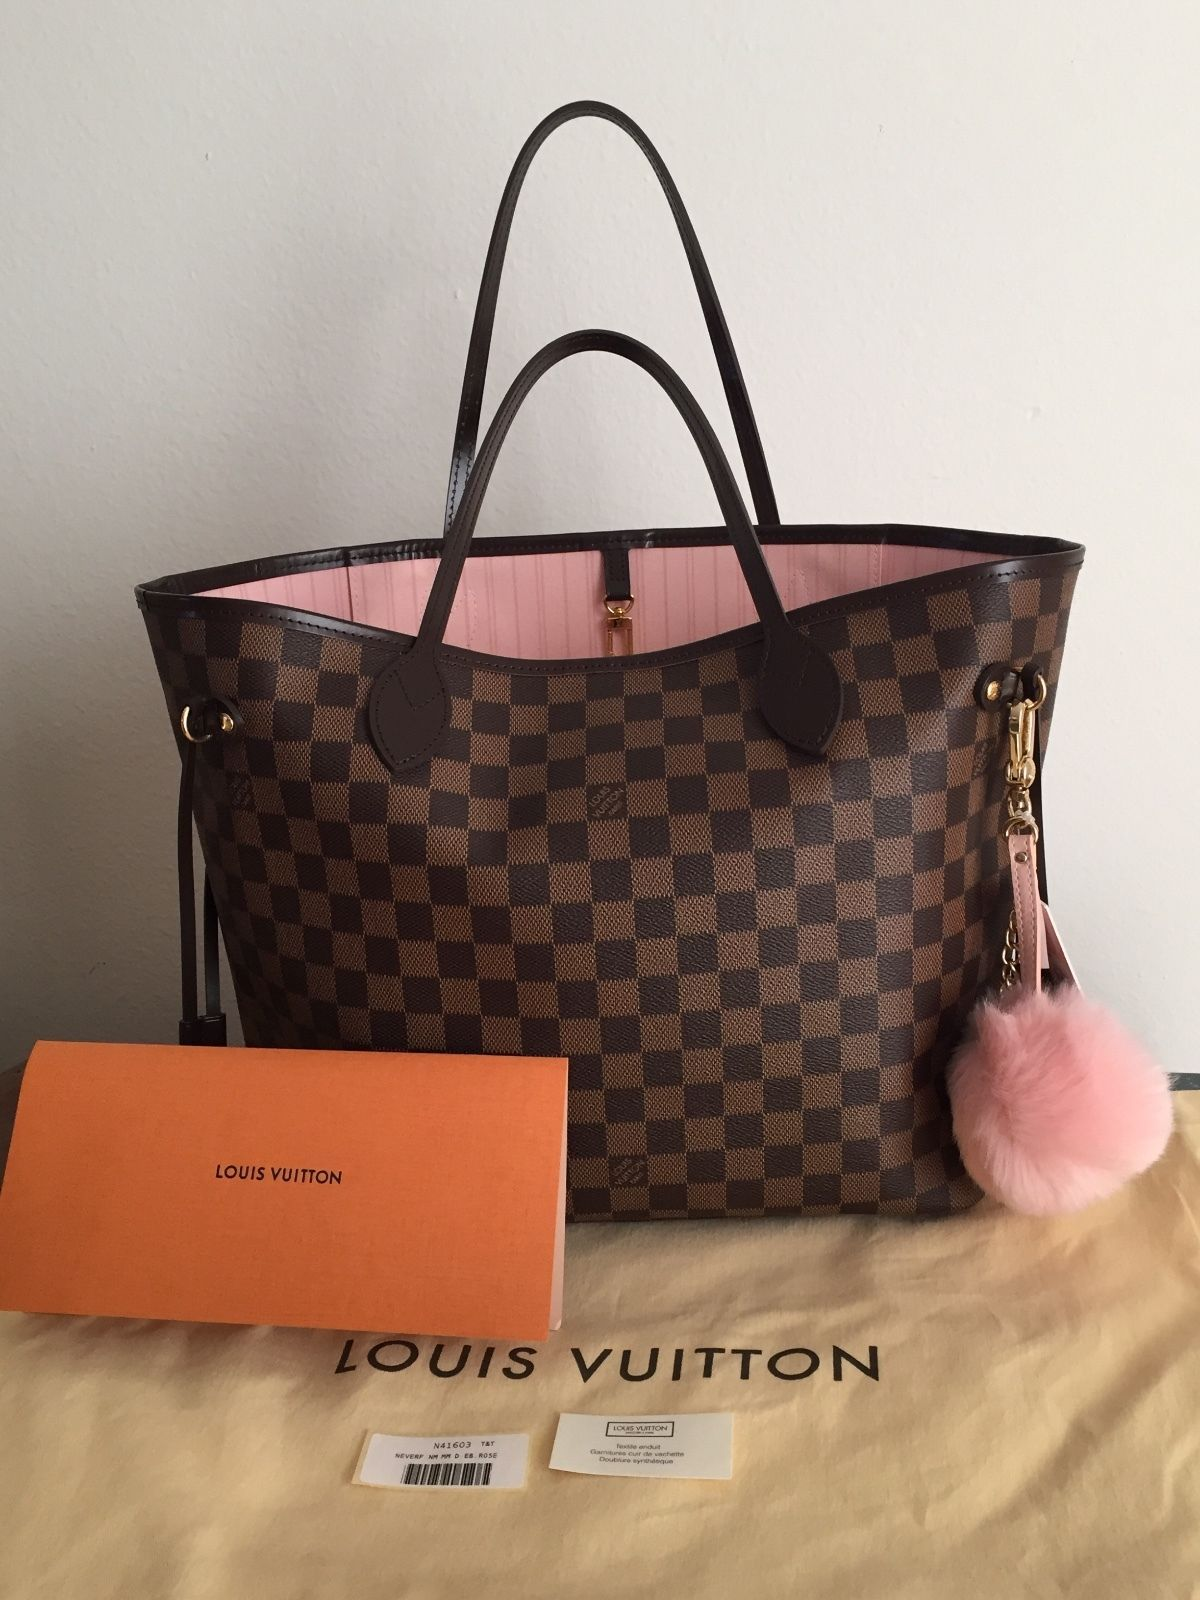 Authentic Louis Vuitton Neverfull Mm Damier Ebene Rose Ballerine Handbag Tote 1100 0